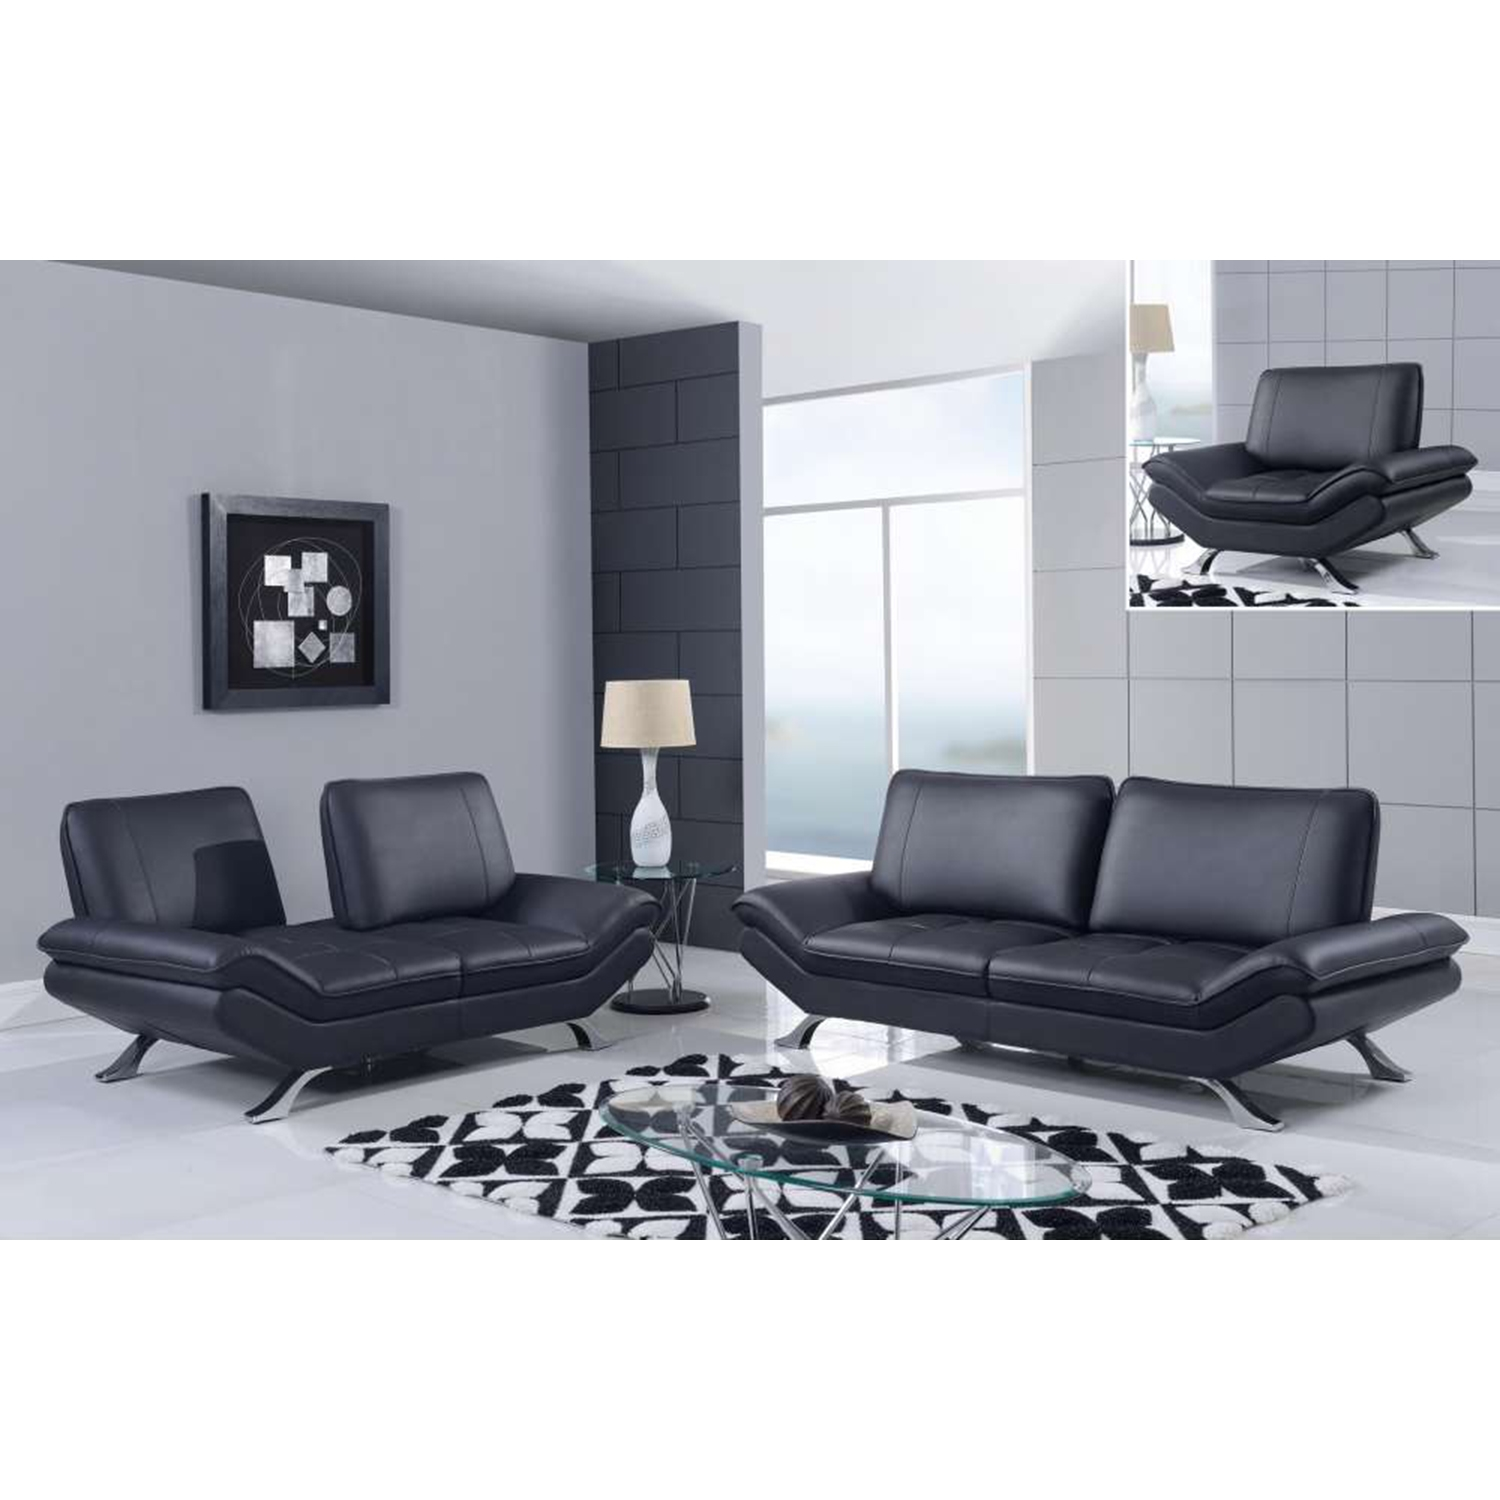 Modern Leather Sofa Set in Natalie Black